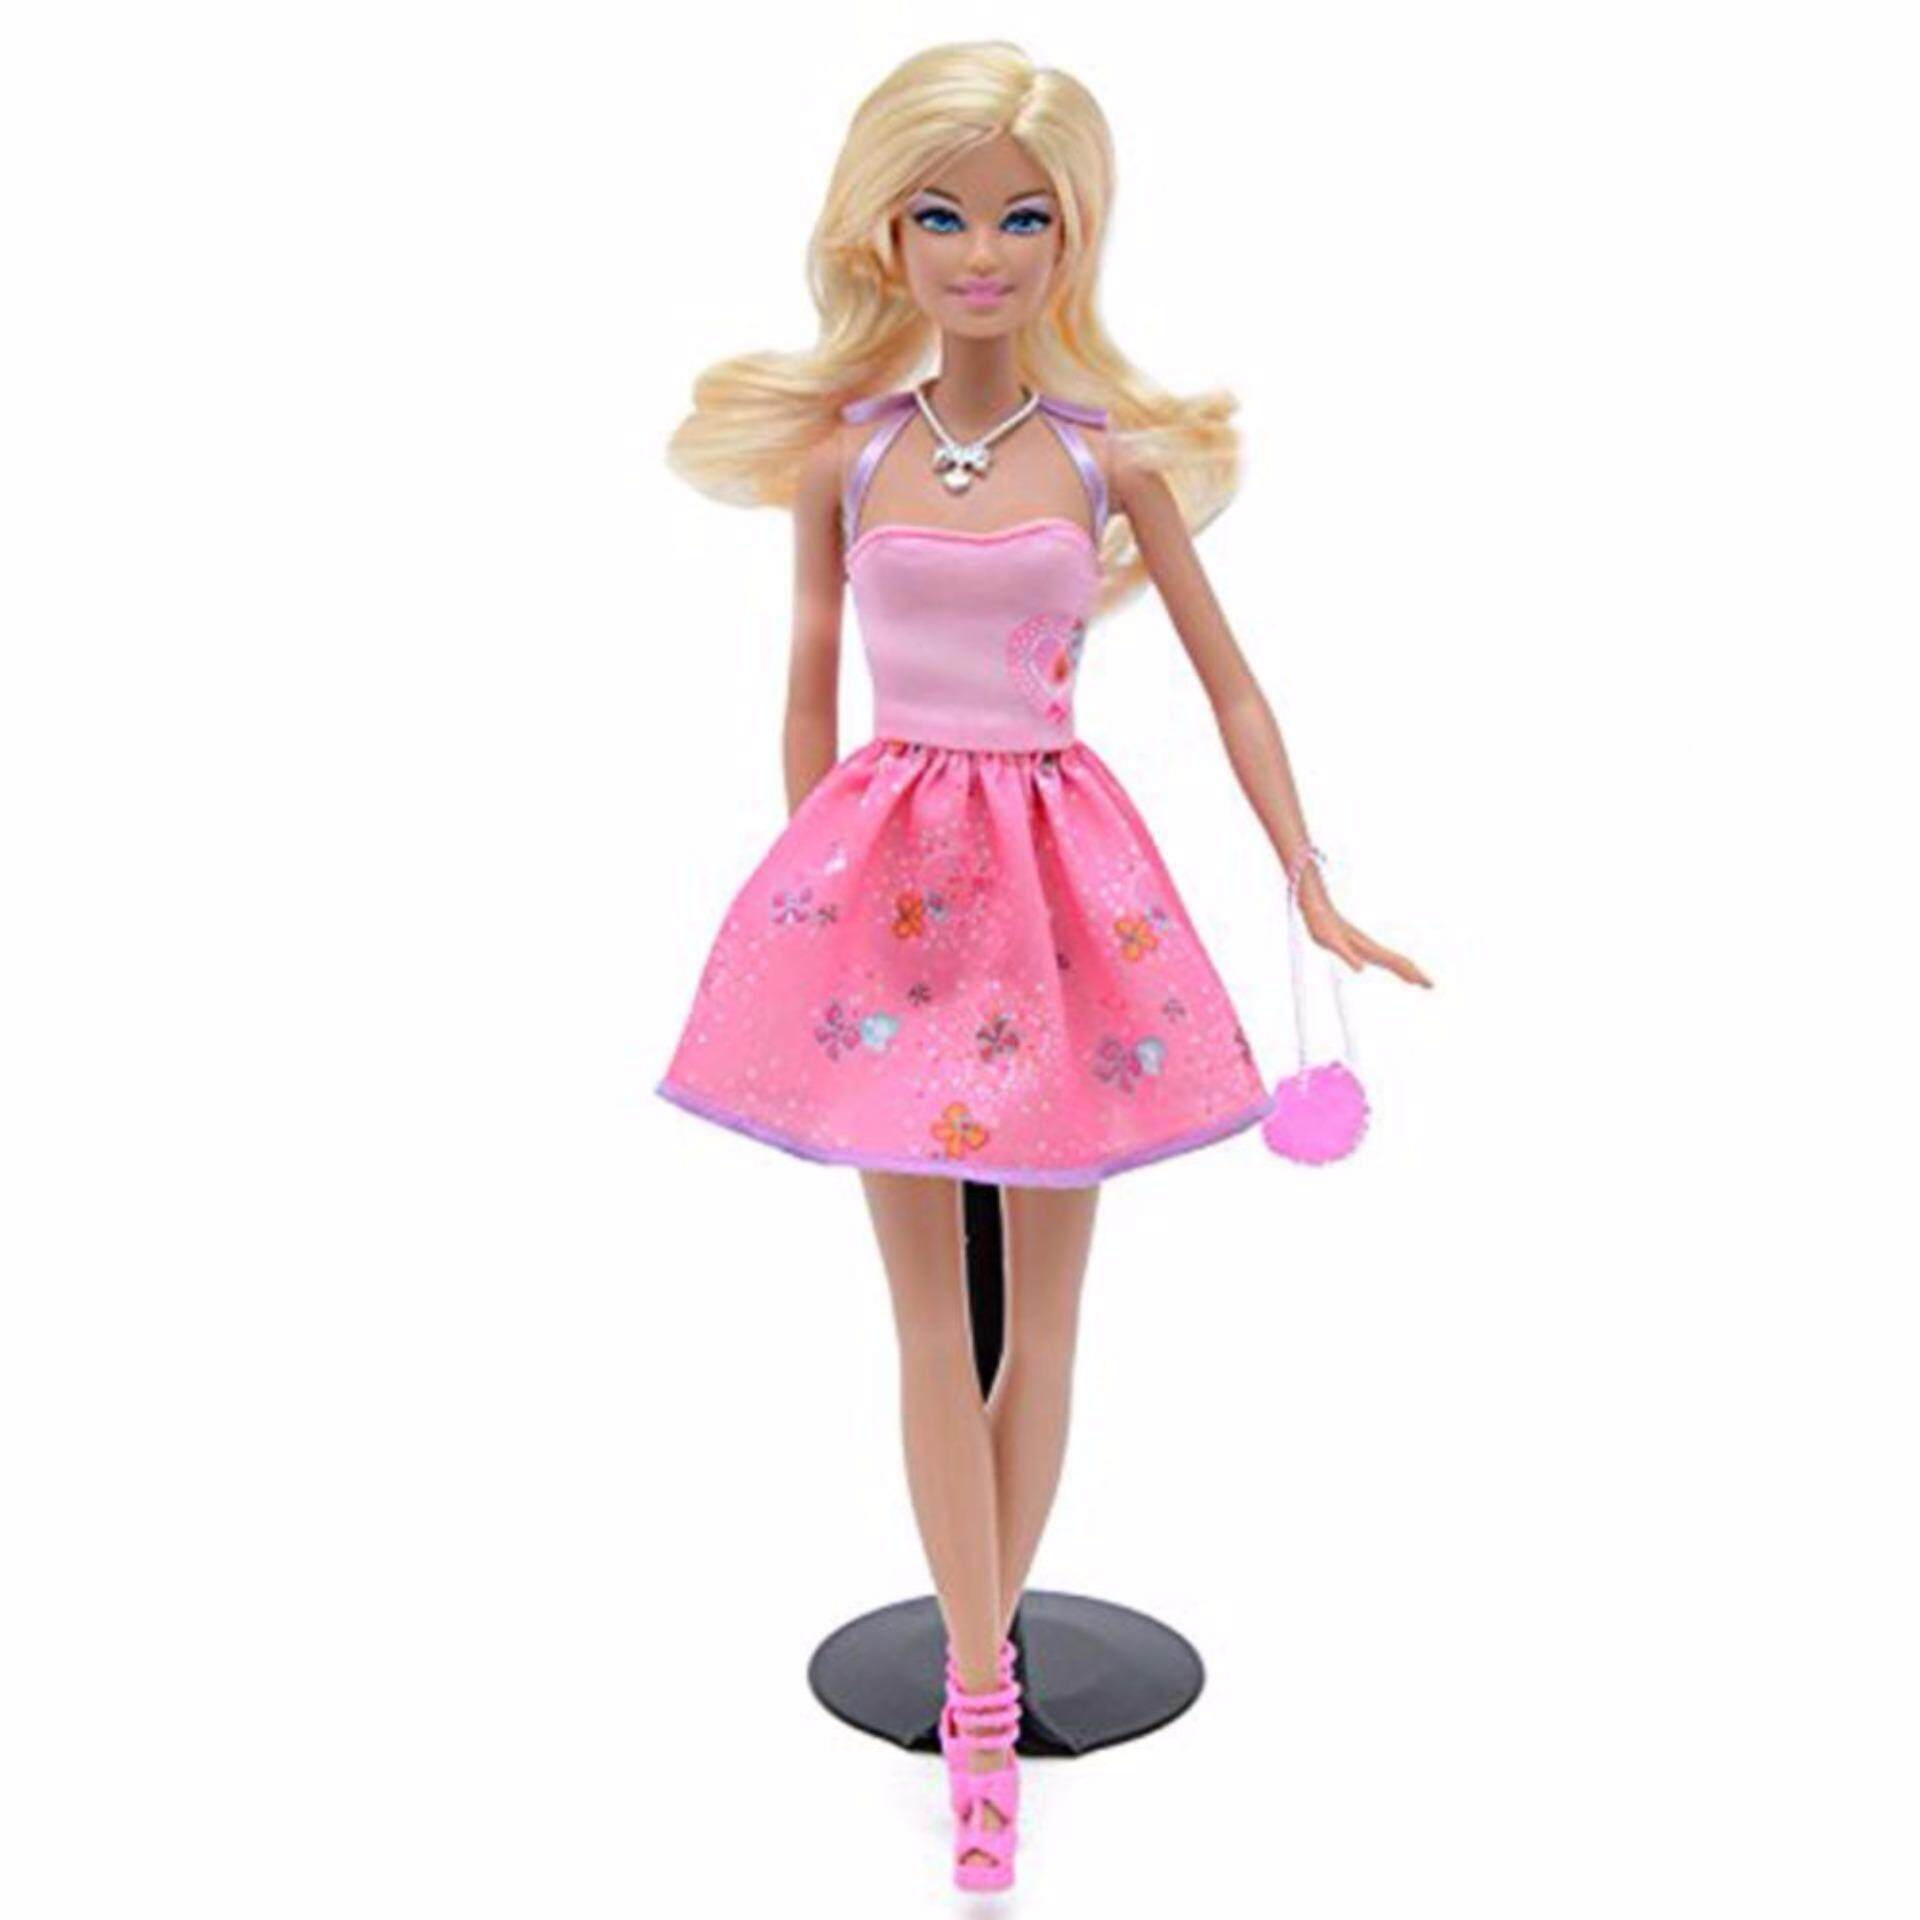 28f41aed2 Barbie Doll Toys Princess Designer Collection Gift Box Set With Barbie  Clothes Dress For Baby Girls ...